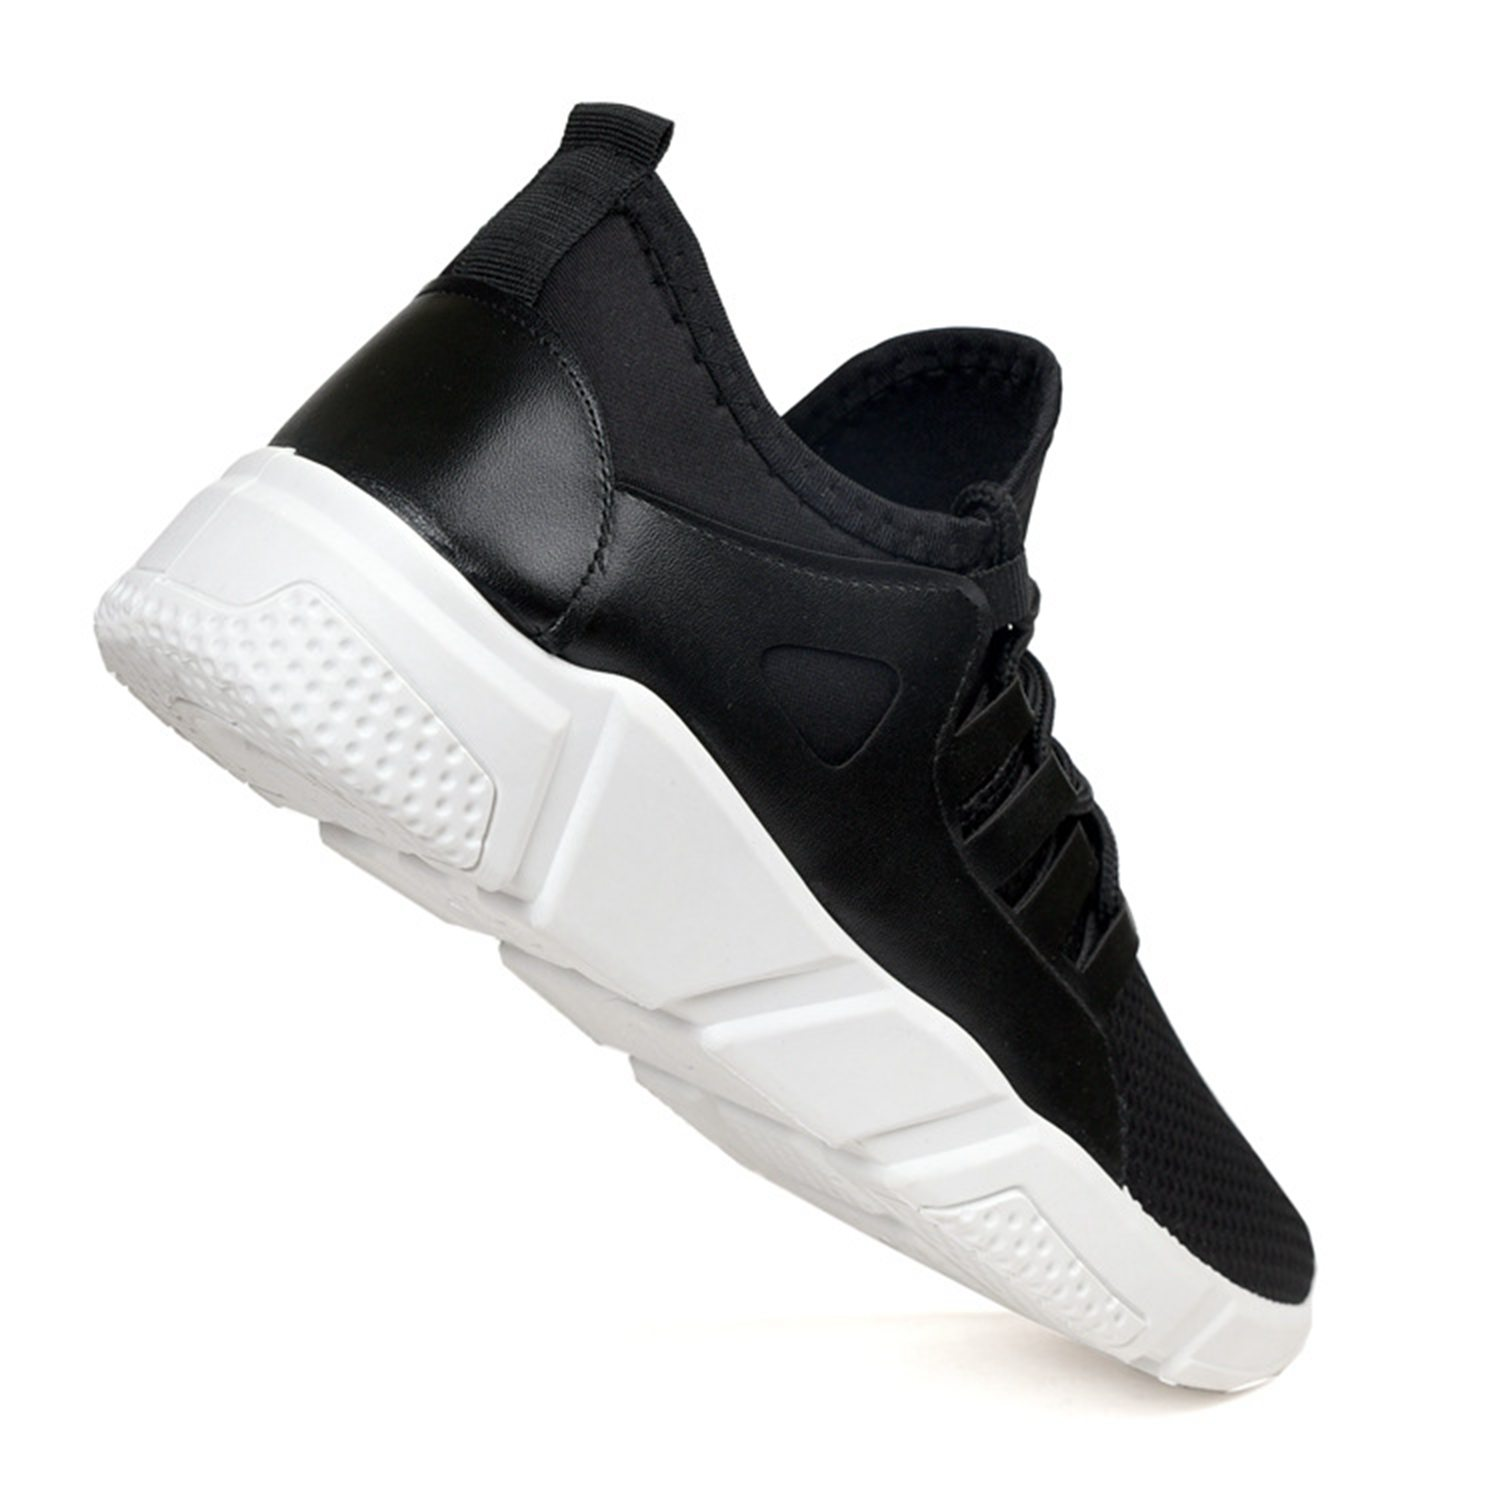 AUAU Fashion Sneakers For Men Shoes Spring Summer Comfortable Breathable Solid Lace-UP Walking Workout Casual Shoes Mesh Shoes